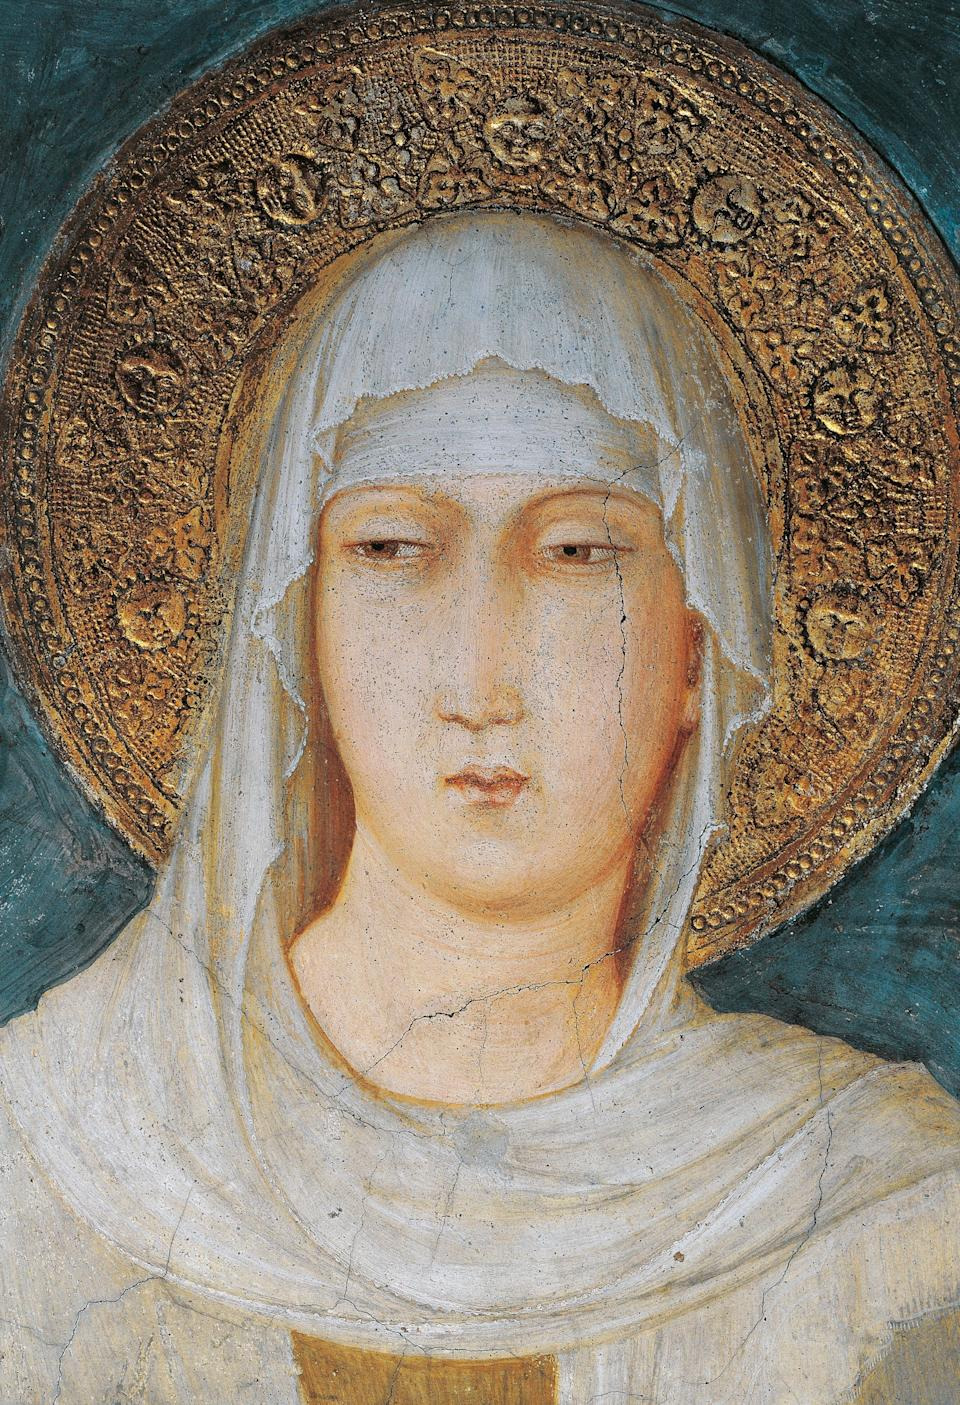 "<a href=""https://www.ewtn.com/saintsHoly/saints/C/stclareofassisi.asp"">Clare of Assisi</a> shunned a life of luxury in her wealthy Italian family to devote herself to the burgeoning order of Francis of Assisi. When her parents promised her hand in marriage to a wealthy man in 1211, Clare fled for the Porziuncola Chapel and was taken in by Francis. She took vows dedicating her life to God, and Francis placed Clare provisionally with the Benedictine nuns of San Paolo. Her family, furious at Clare's secret flight, went there to try to drag her home by force, but Clare was resolute. Clare's piety was so profound that her sister, mother and several other female relatives eventually came to live with her and be her disciples in her convent outside Assisi. The group came to be known as the ""Poor Clares"" and walked barefoot, slept on the ground, abstained from meat, and spoke only when necessary. Clare died in 1253 and was <a href=""http://www.biography.com/people/st-clare-of-assisi-9249093"">canonized</a> two years later by Pope Alexander IV."